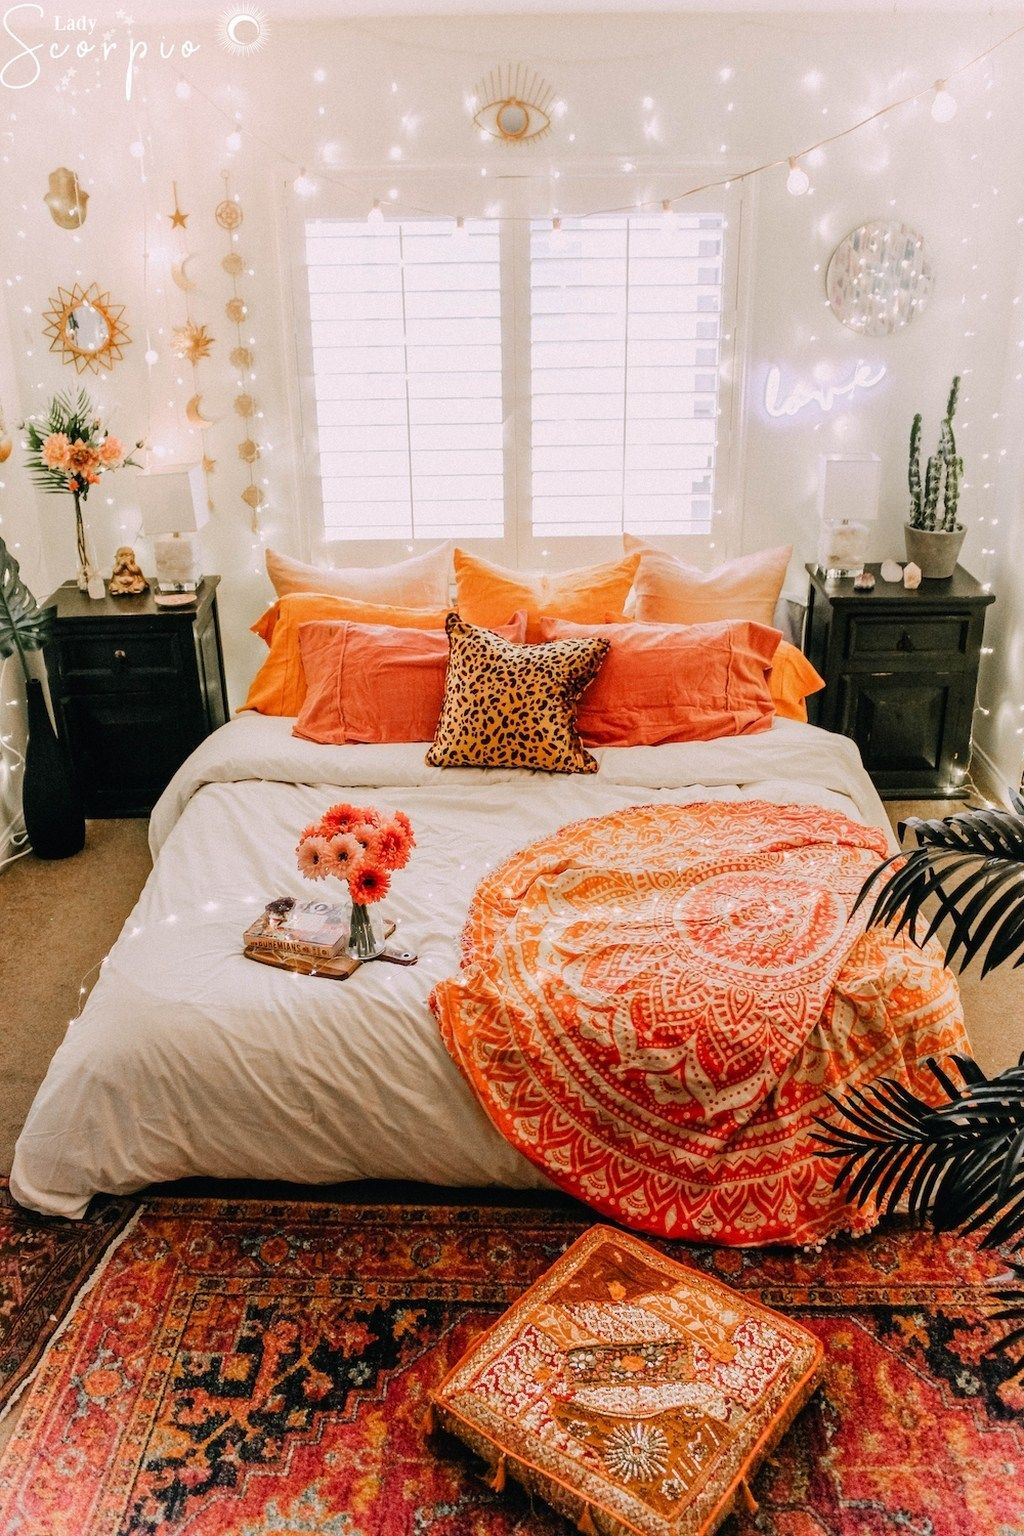 Unique Boho Bedroom Decorating Ideas To Upgrade Your House ... on Boho Bedroom Ideas On A Budget  id=79838